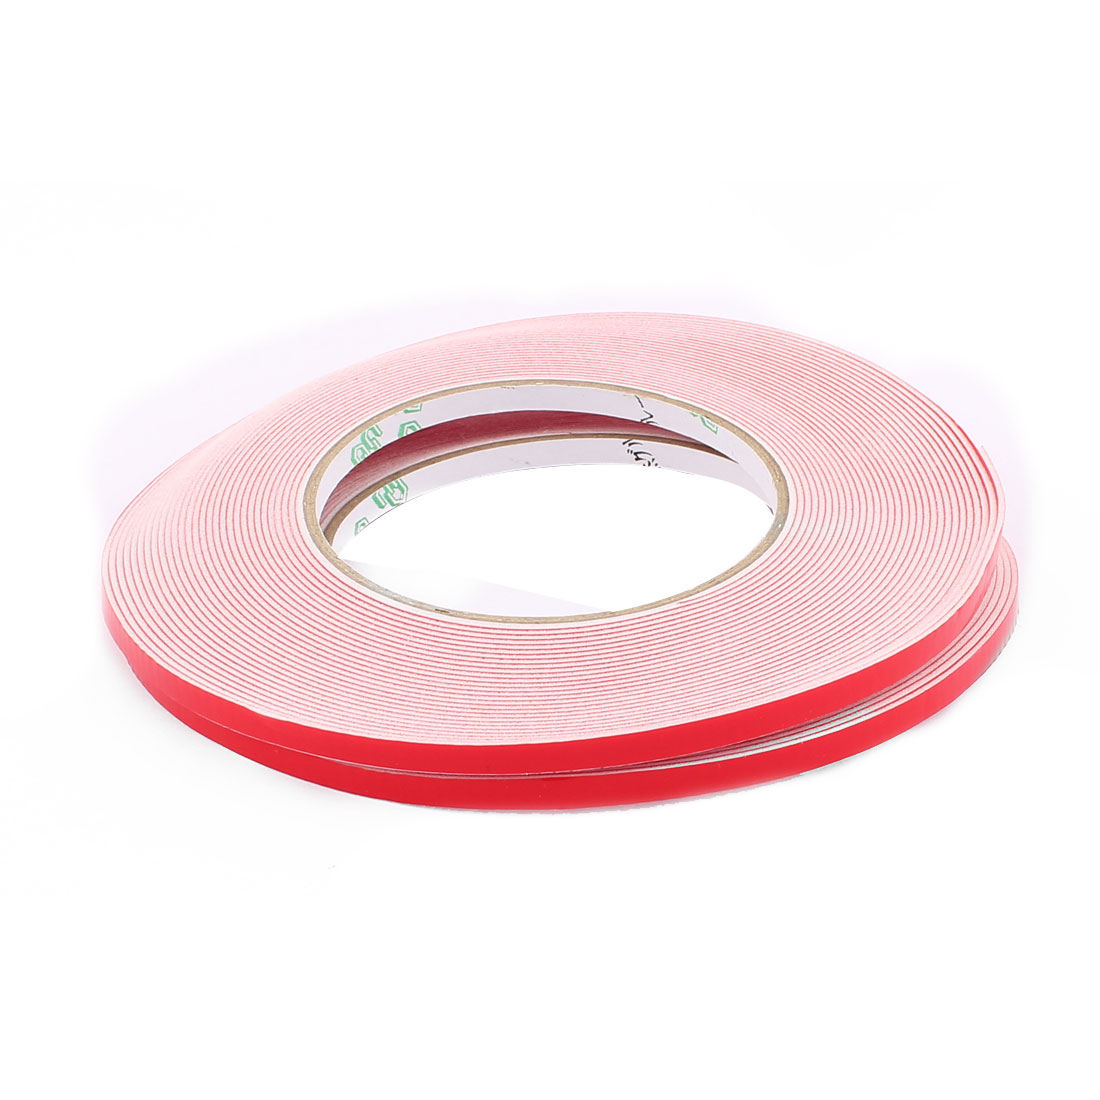 2PCS 5MM Width 10M Long 1MM Thick White Dual Sided Waterproof Sponge Tape for Car